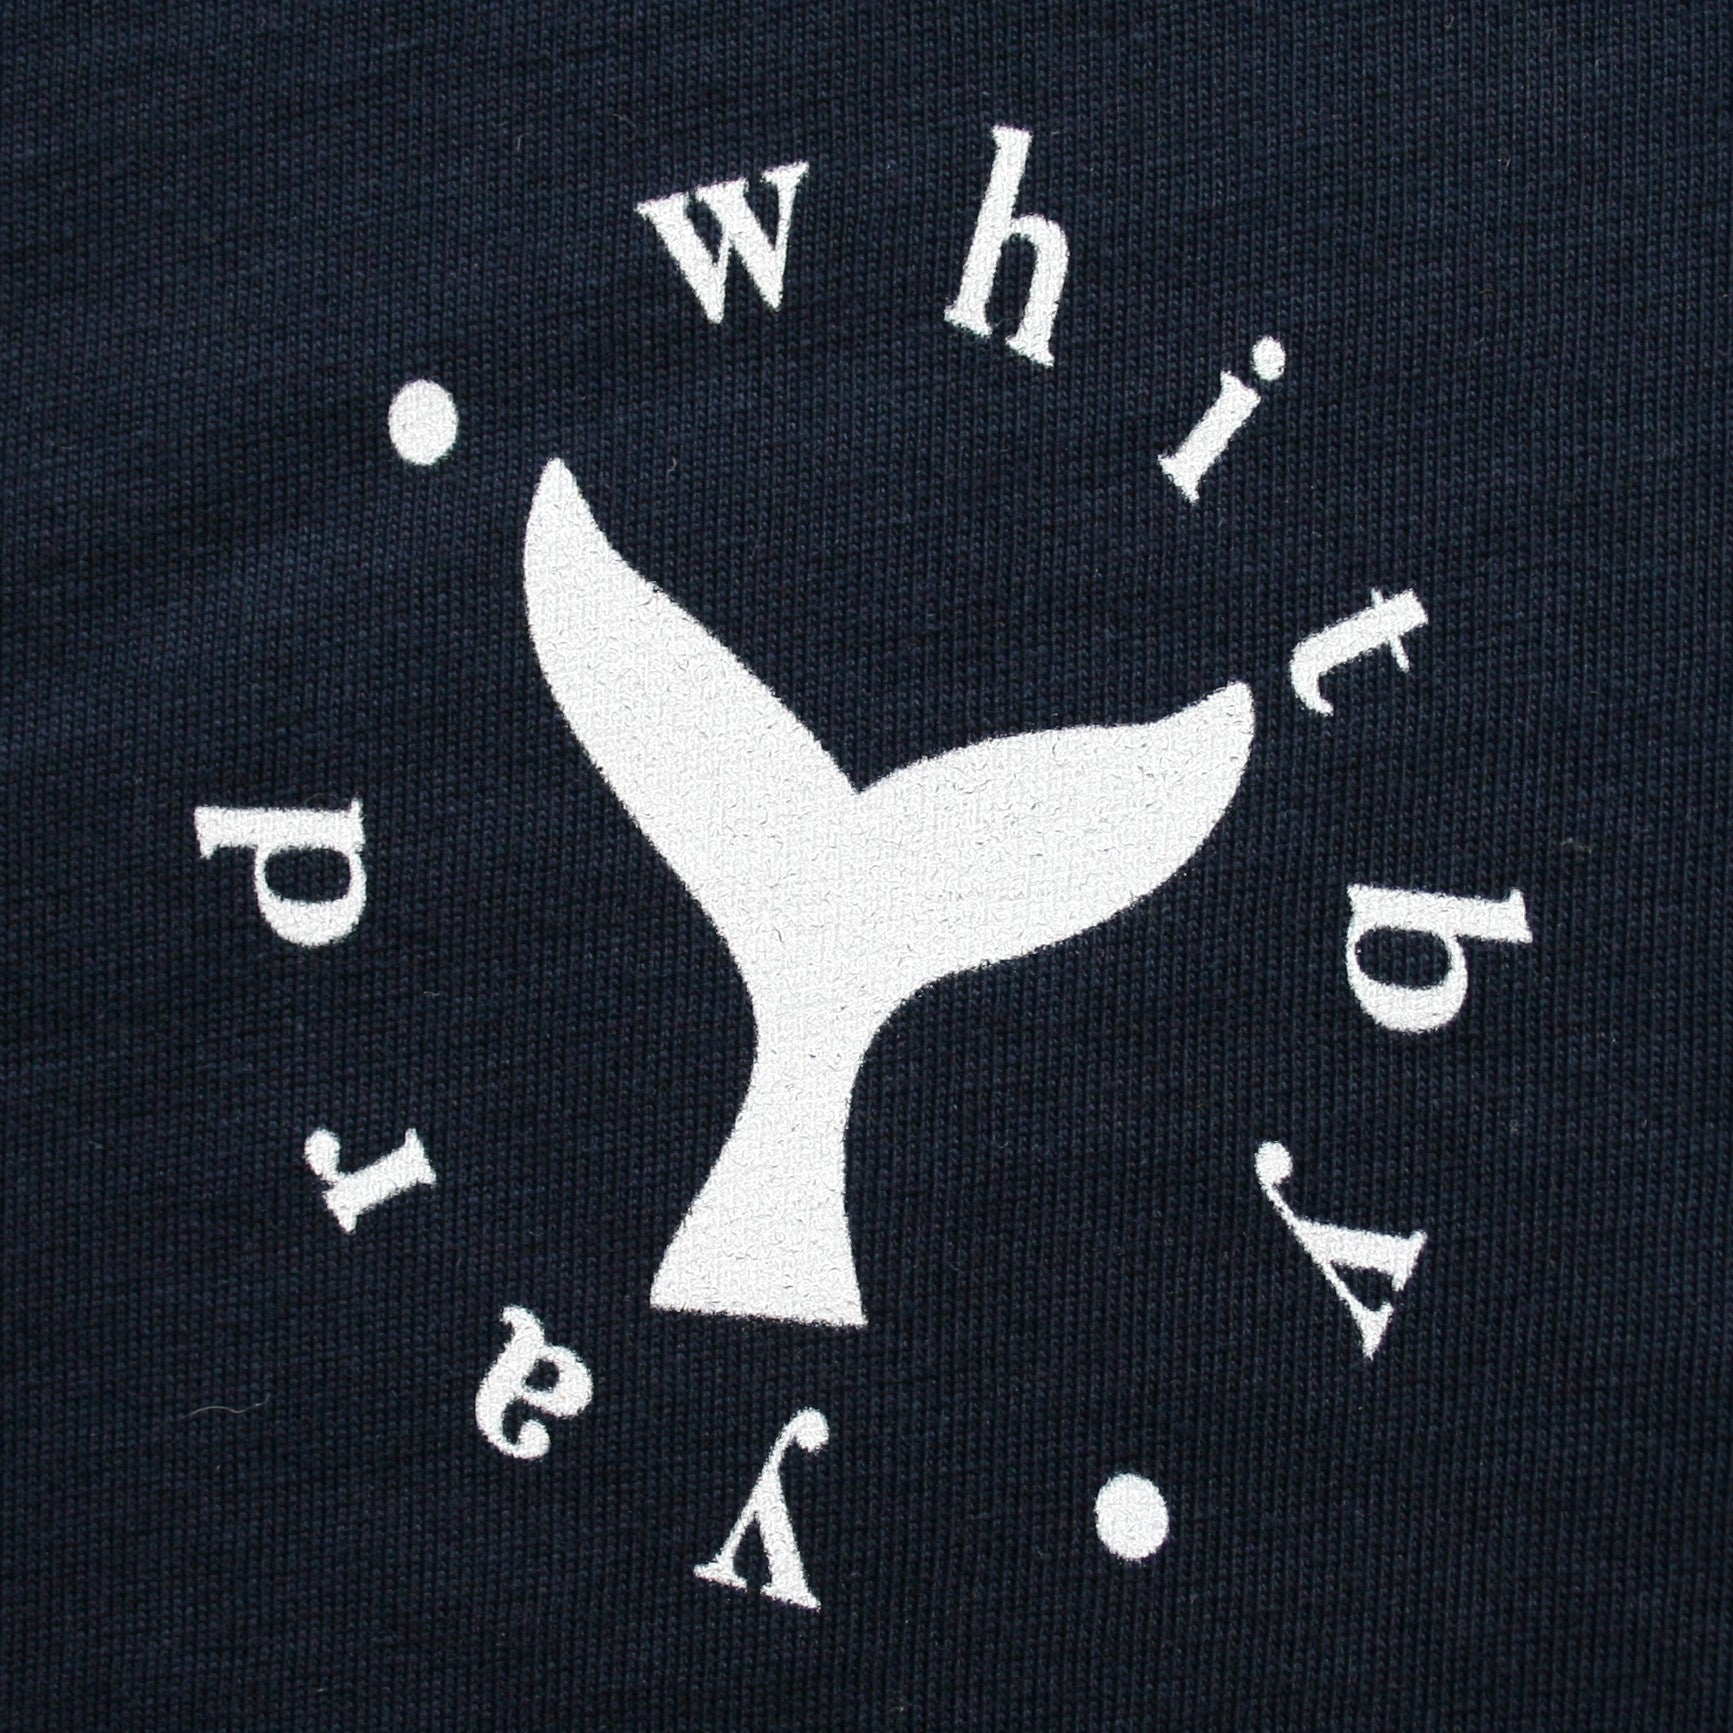 Unisex Whale tail T shirt in Denim Blue